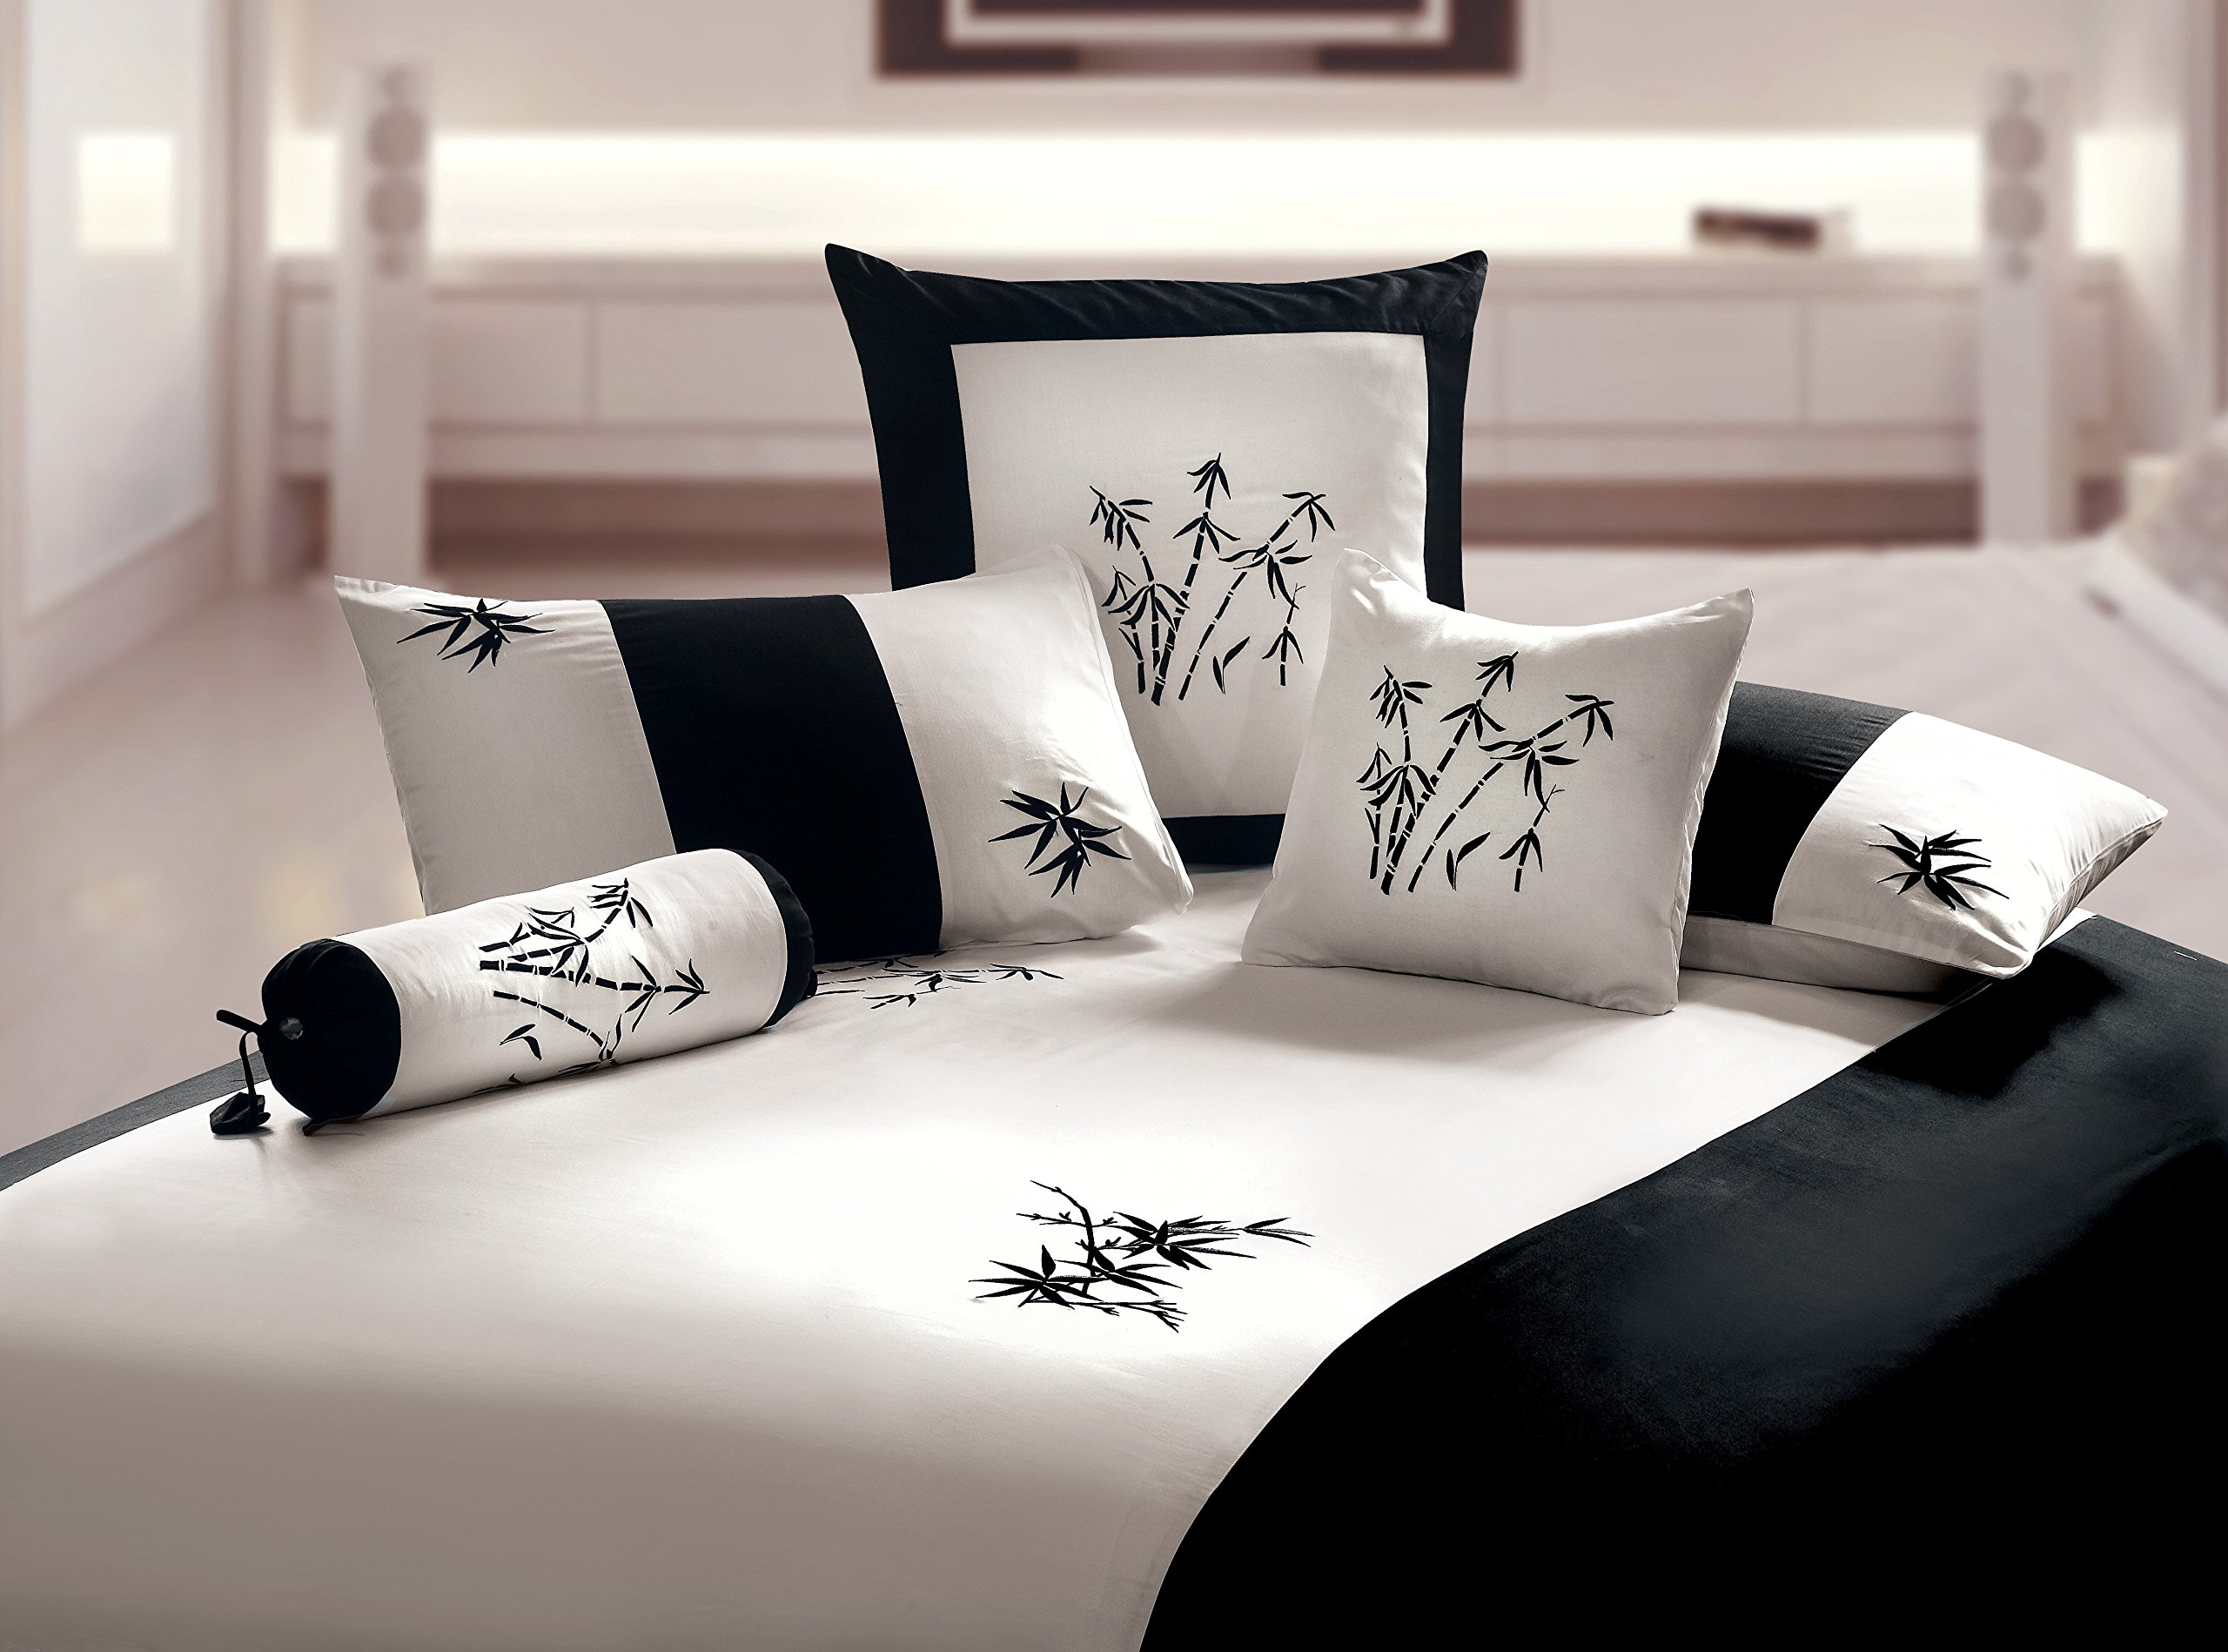 Orient Sense - Black and White King Duvet 3 piece Cover Set ''Zen Garden'' Embroidered Oriental Bamboo Style Design 100% Cotton Sateen by Orient Sense